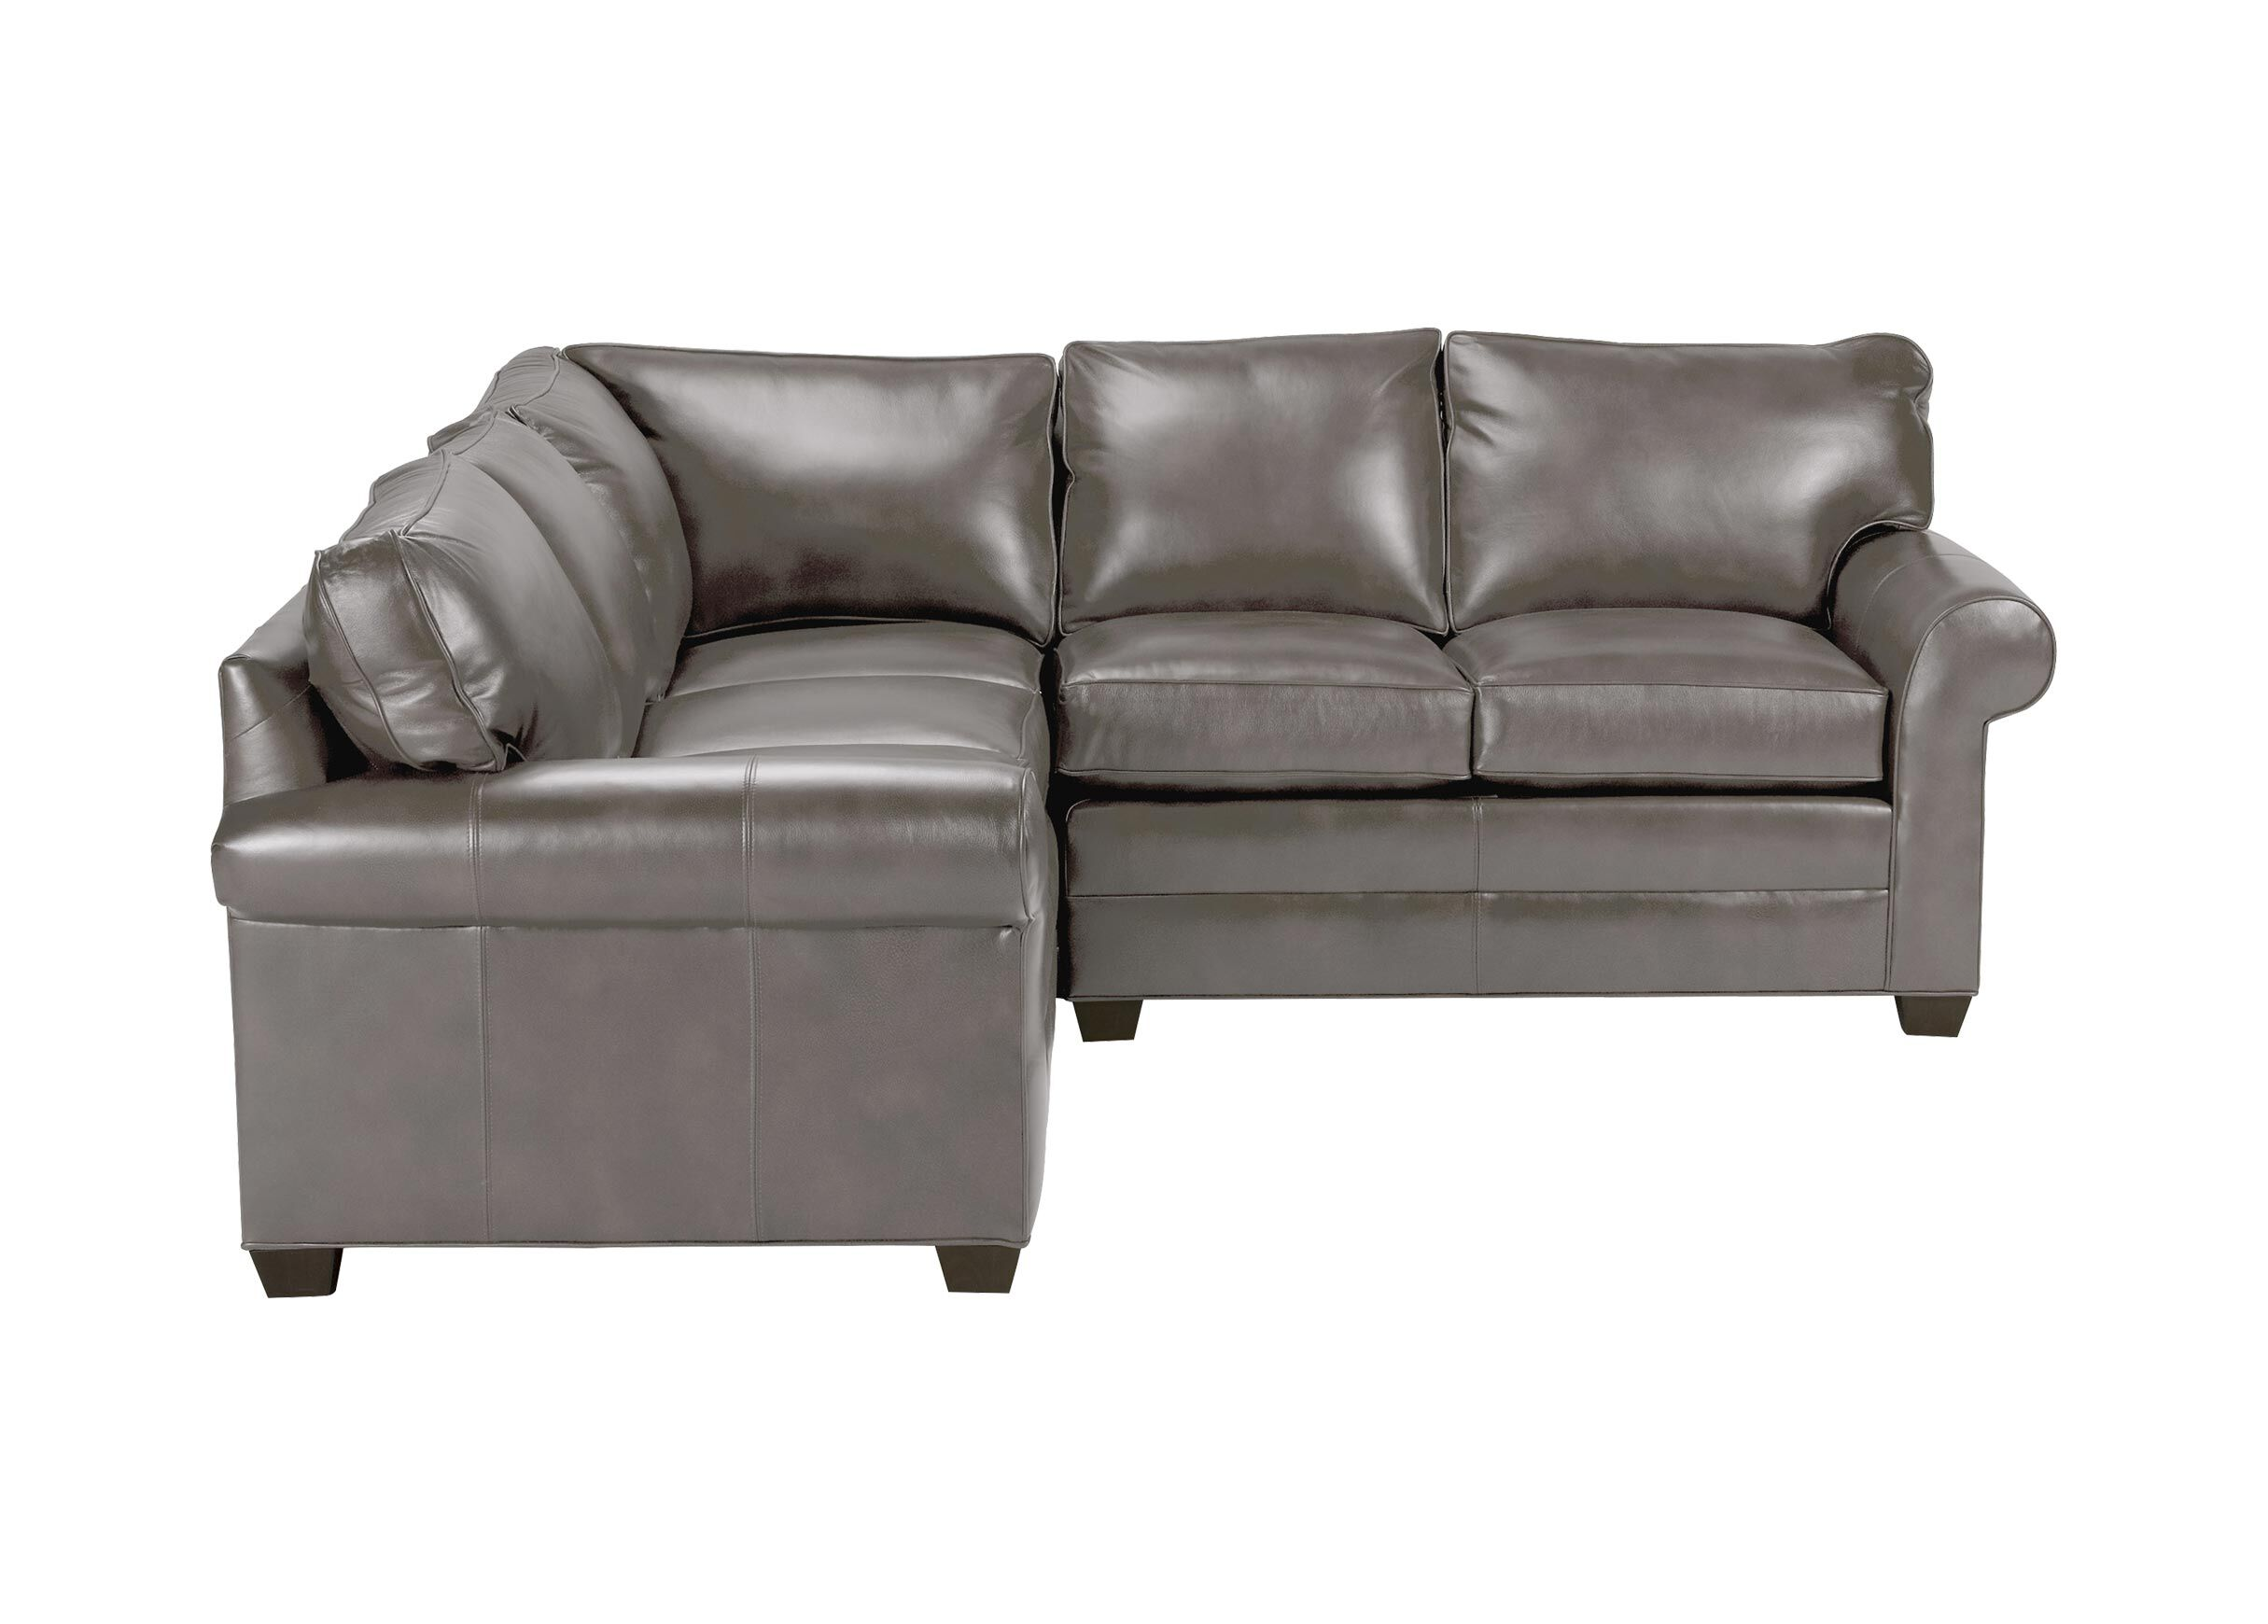 bennett leather sofa patio furniture covers three piece sectional quick ship